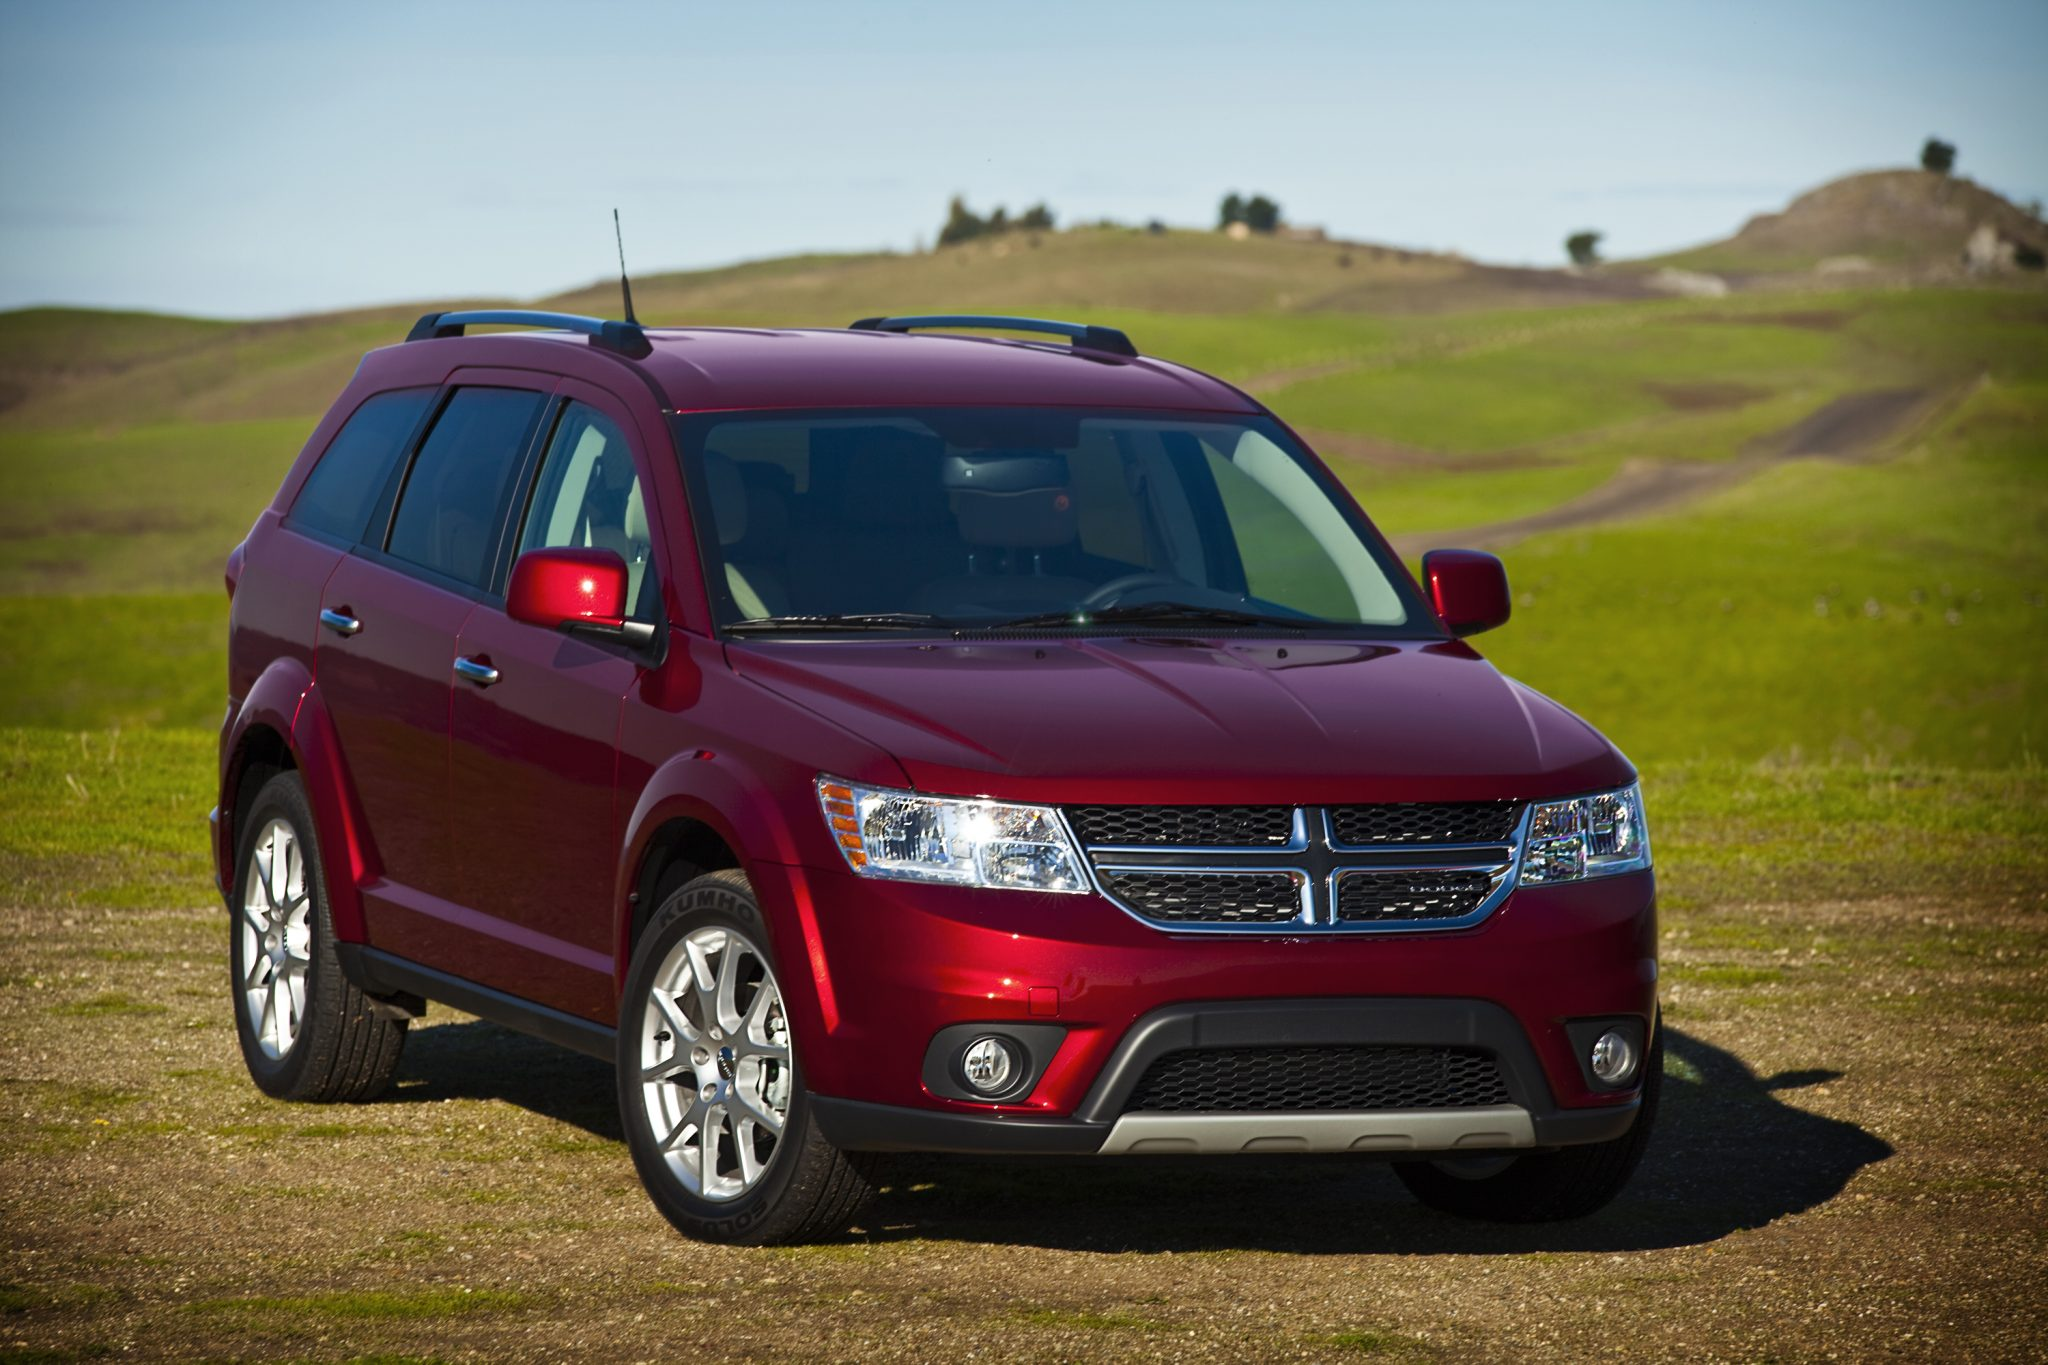 2013 Dodge Journey overview